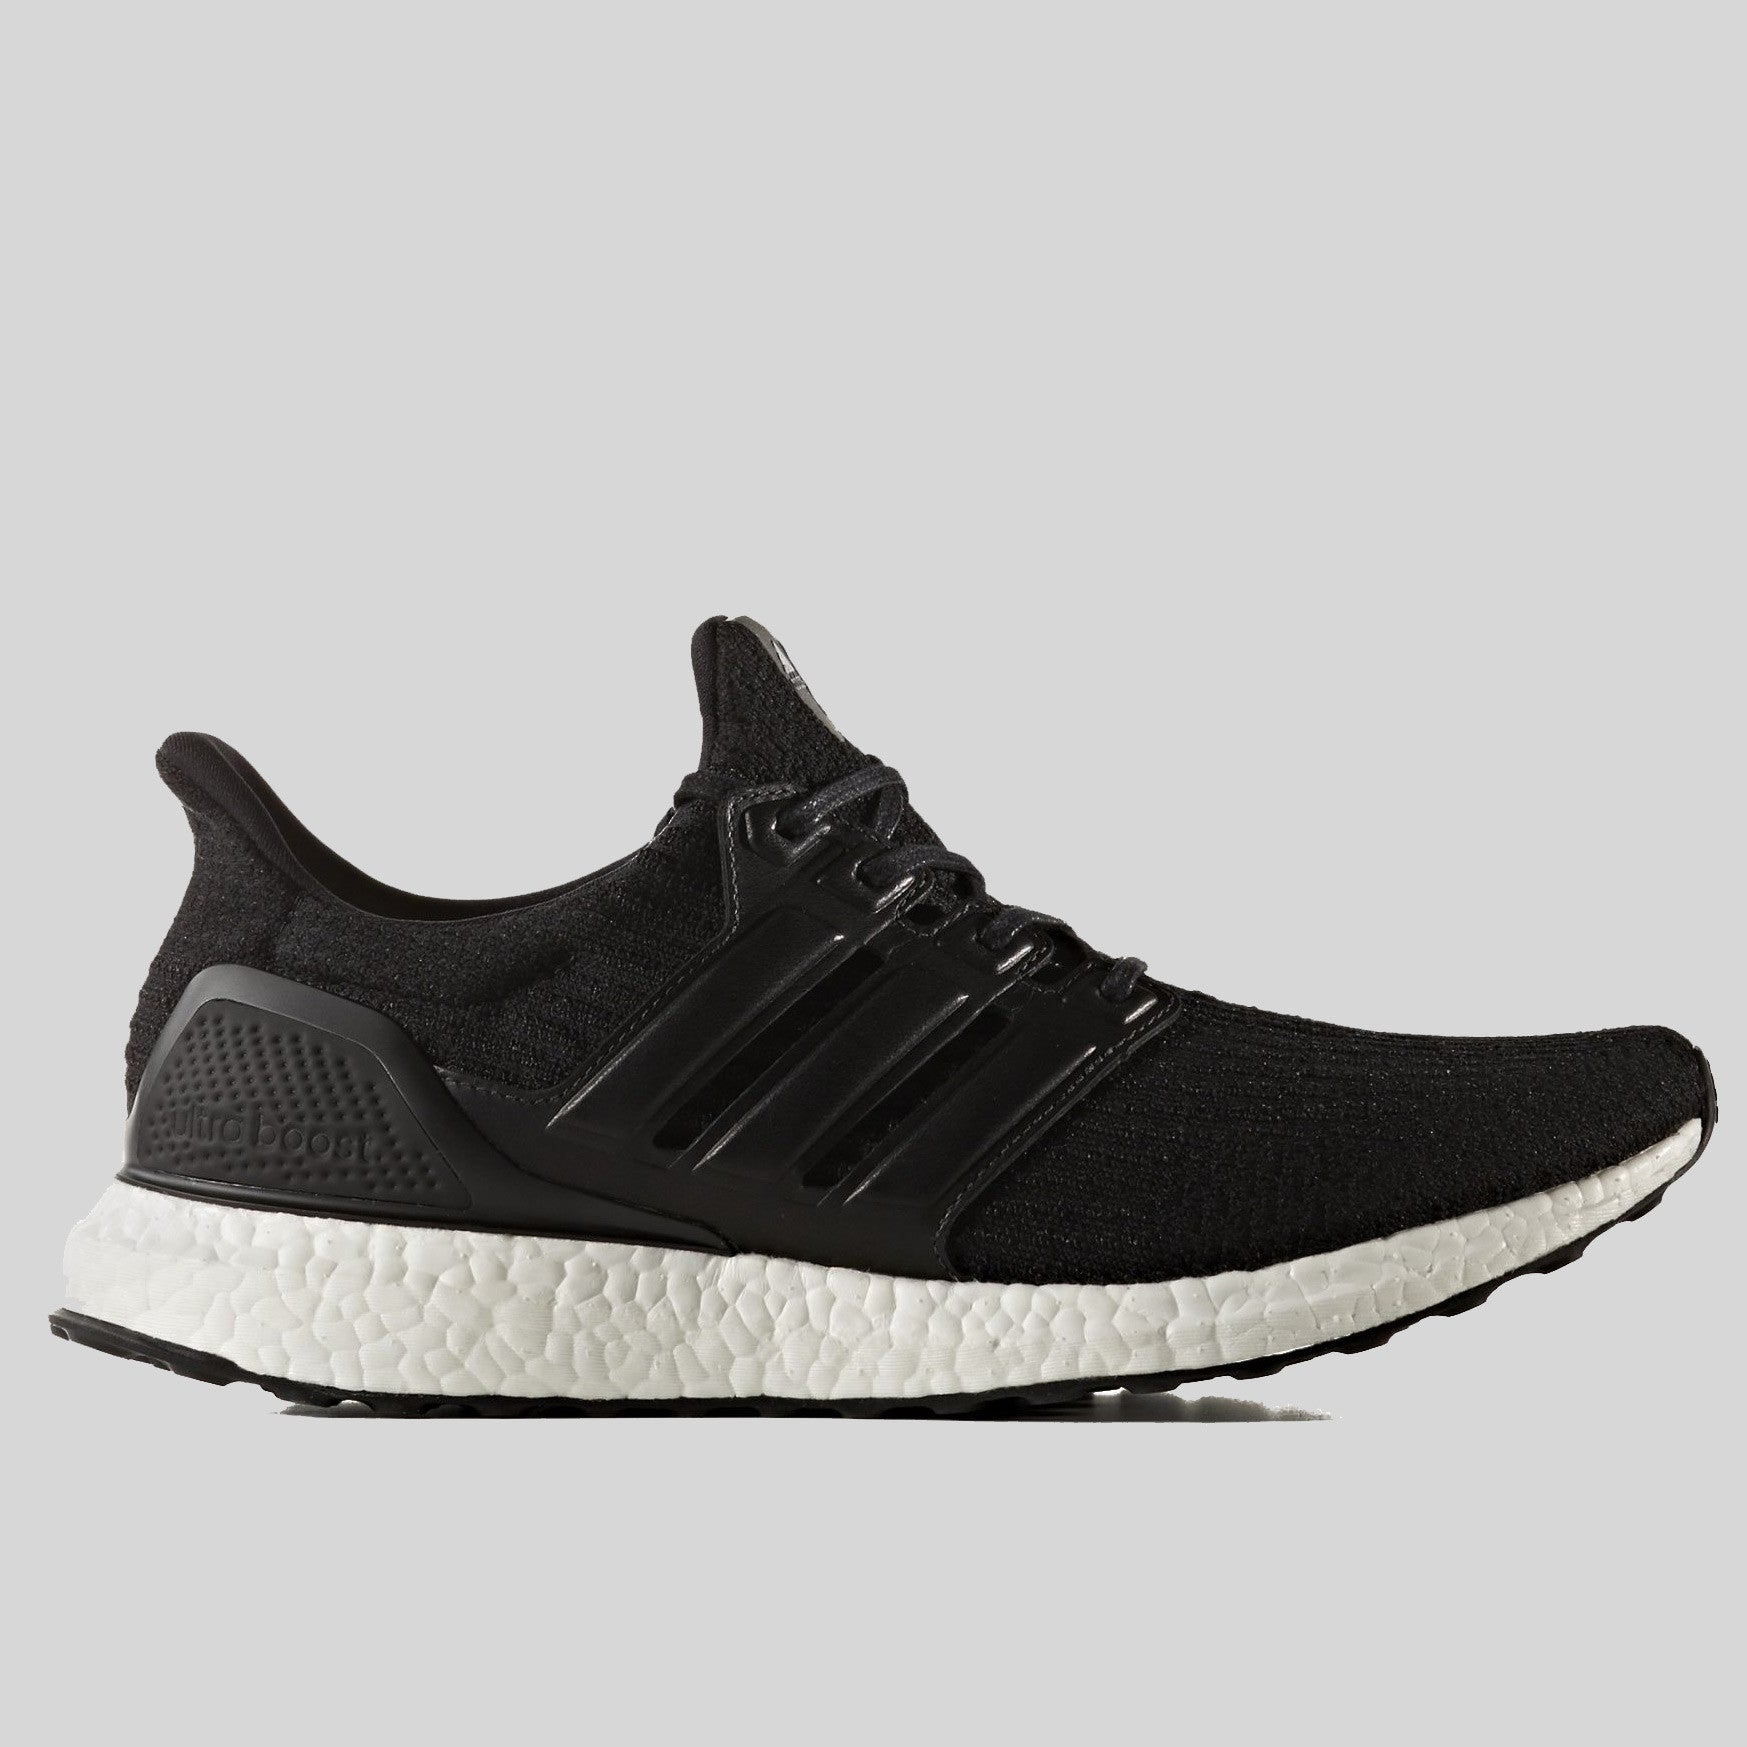 adidas Ultra Boost 3.0 LTD Leather Cage